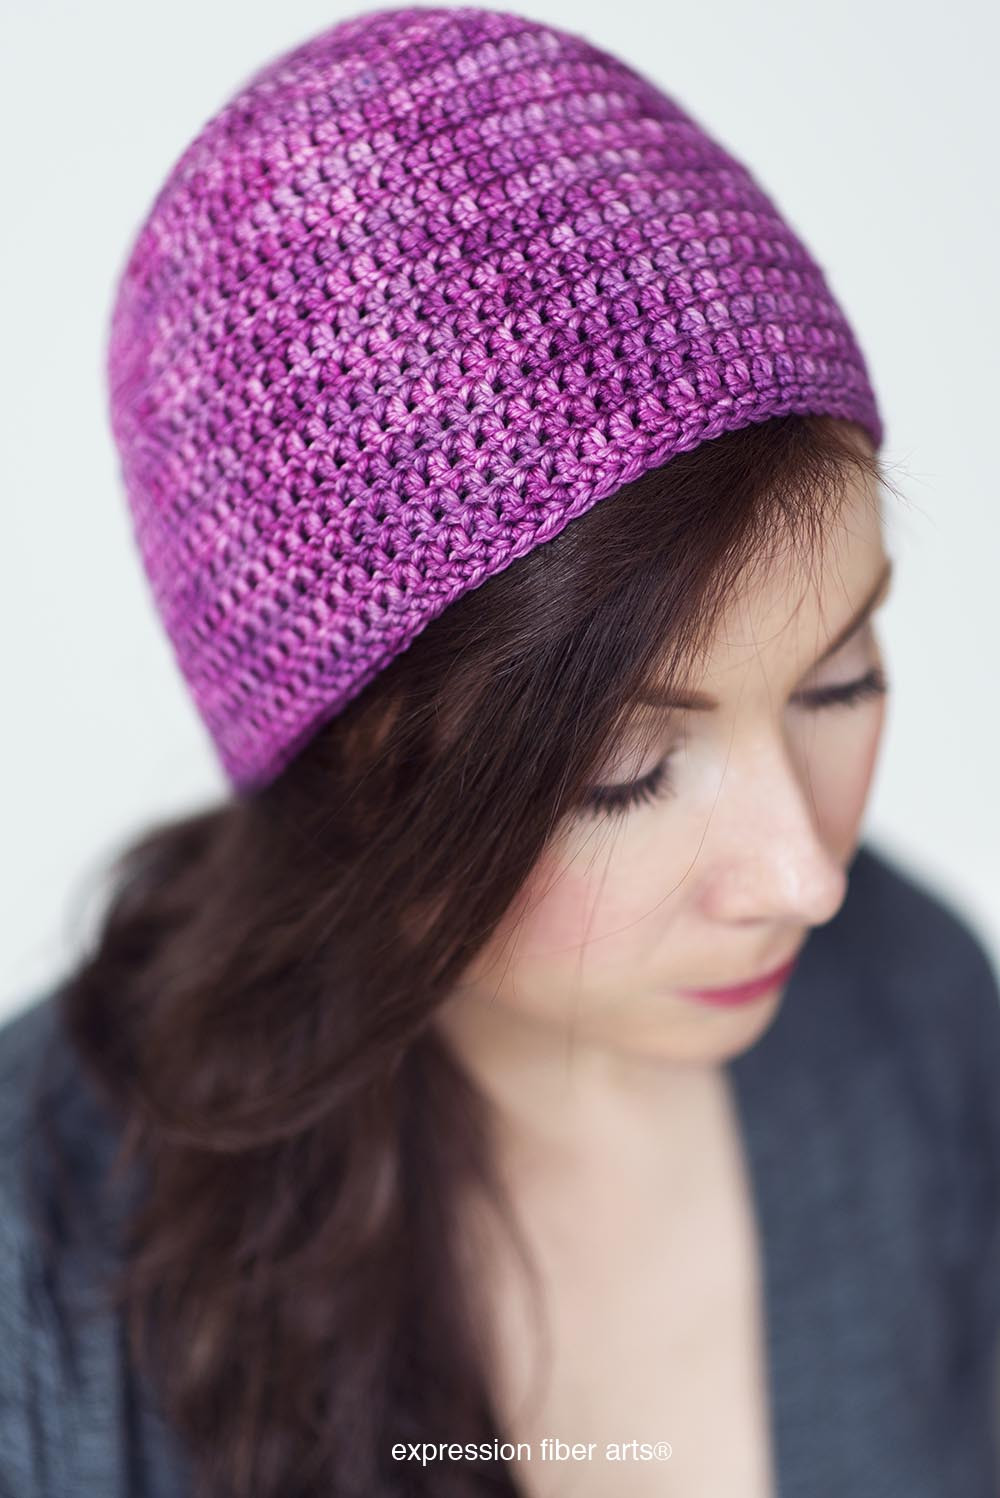 Crochet Hat Patterns for Beginners Luxury How to Crochet A Beanie – for Beginners – Expression Fiber Of Gorgeous 48 Ideas Crochet Hat Patterns for Beginners